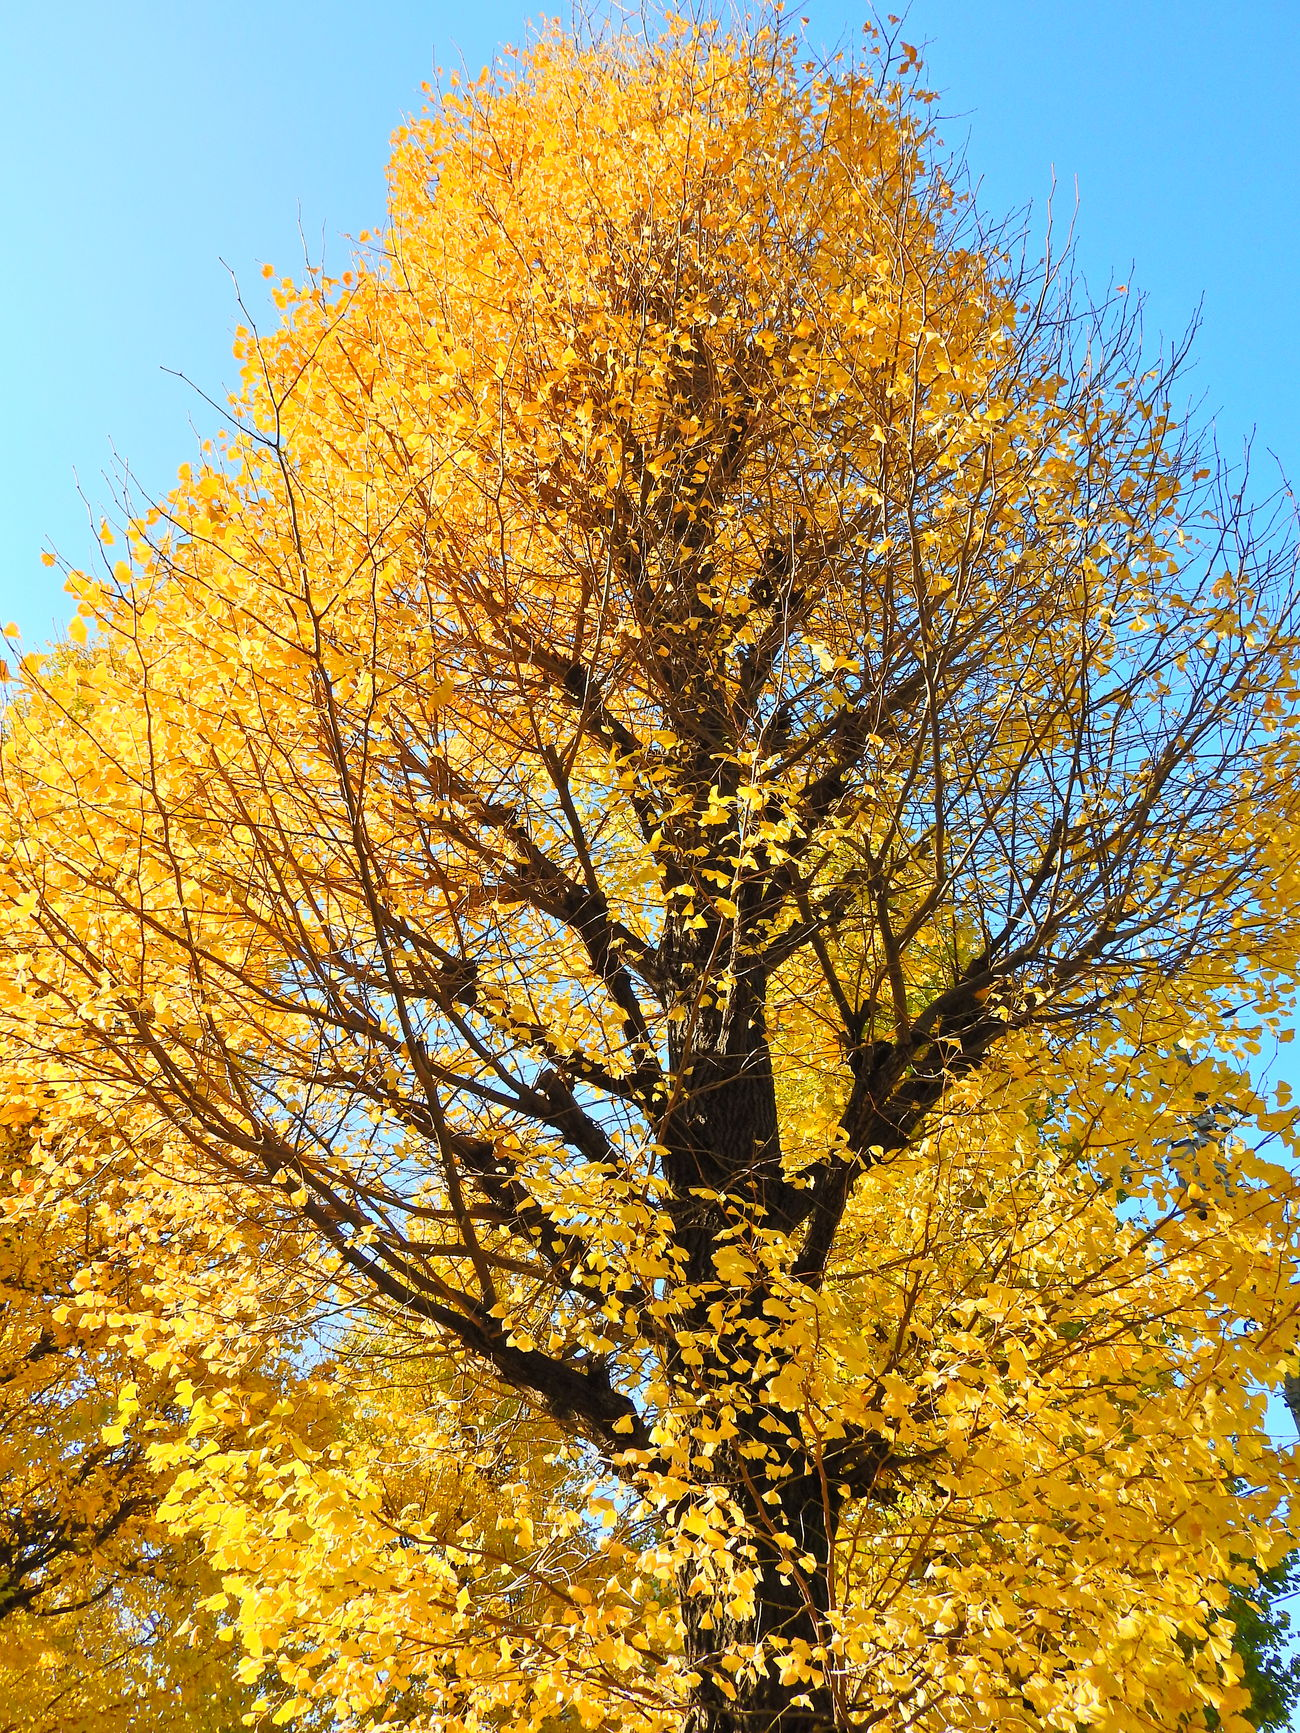 Ginkgo trees Beauty In Nature Branch Close-up Day Growth Low Angle View Nature No People Outdoors Sky Sunlight Tranquility Tree Yellow